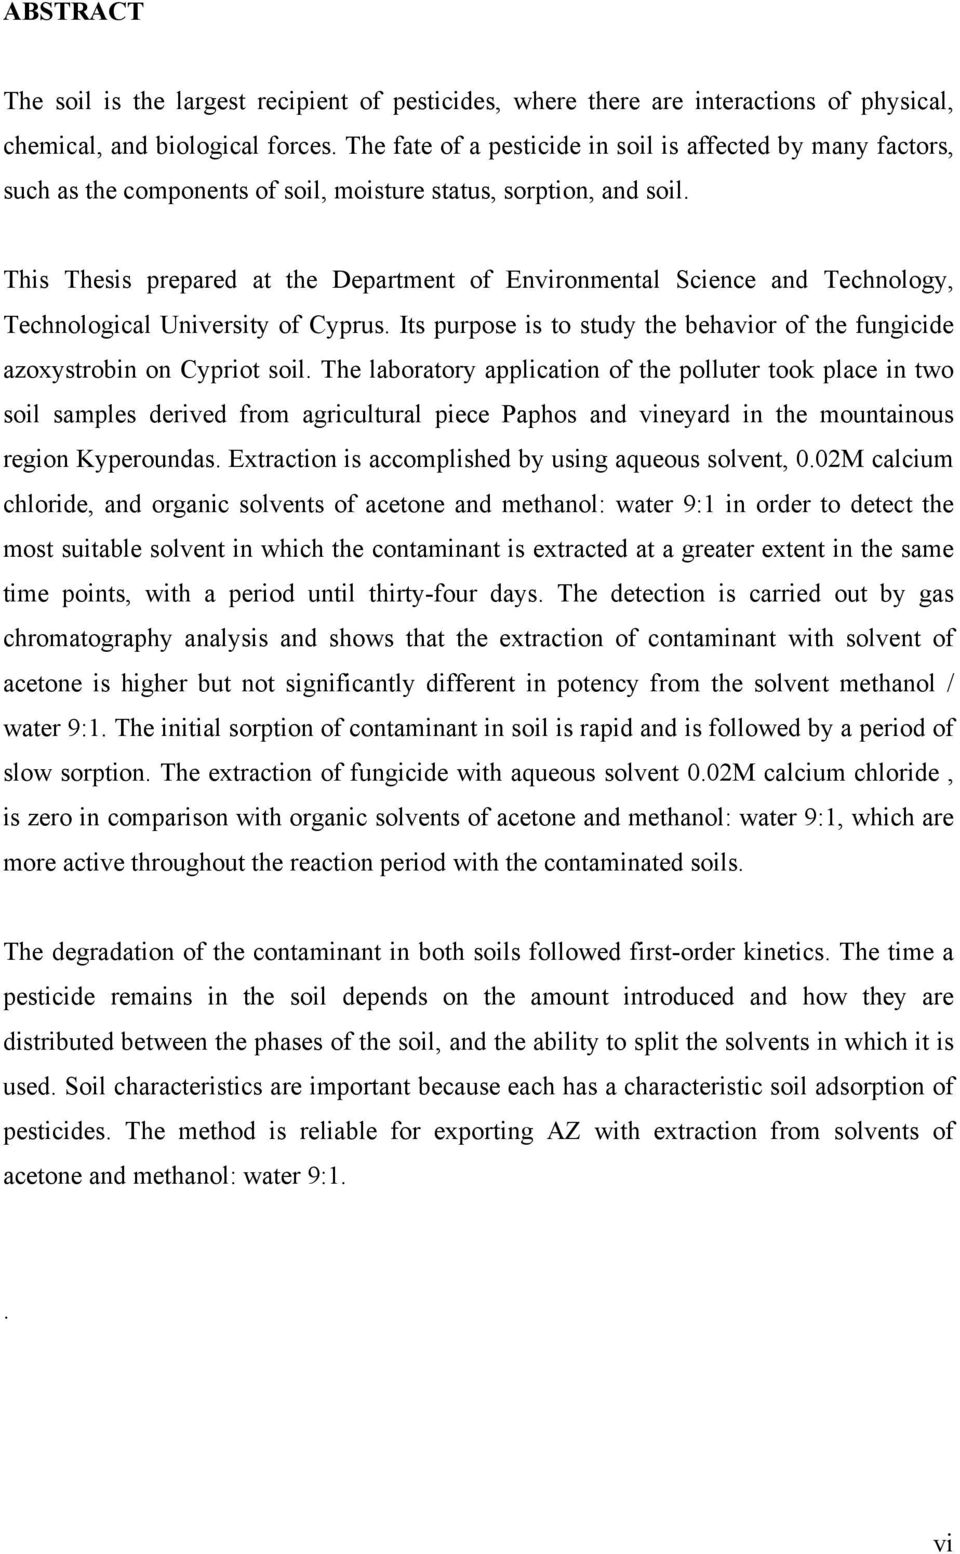 This Thesis prepared at the Department of Environmental Science and Technology, Technological University of Cyprus. Its purpose is to study the behavior of the fungicide azoxystrobin on Cypriot soil.